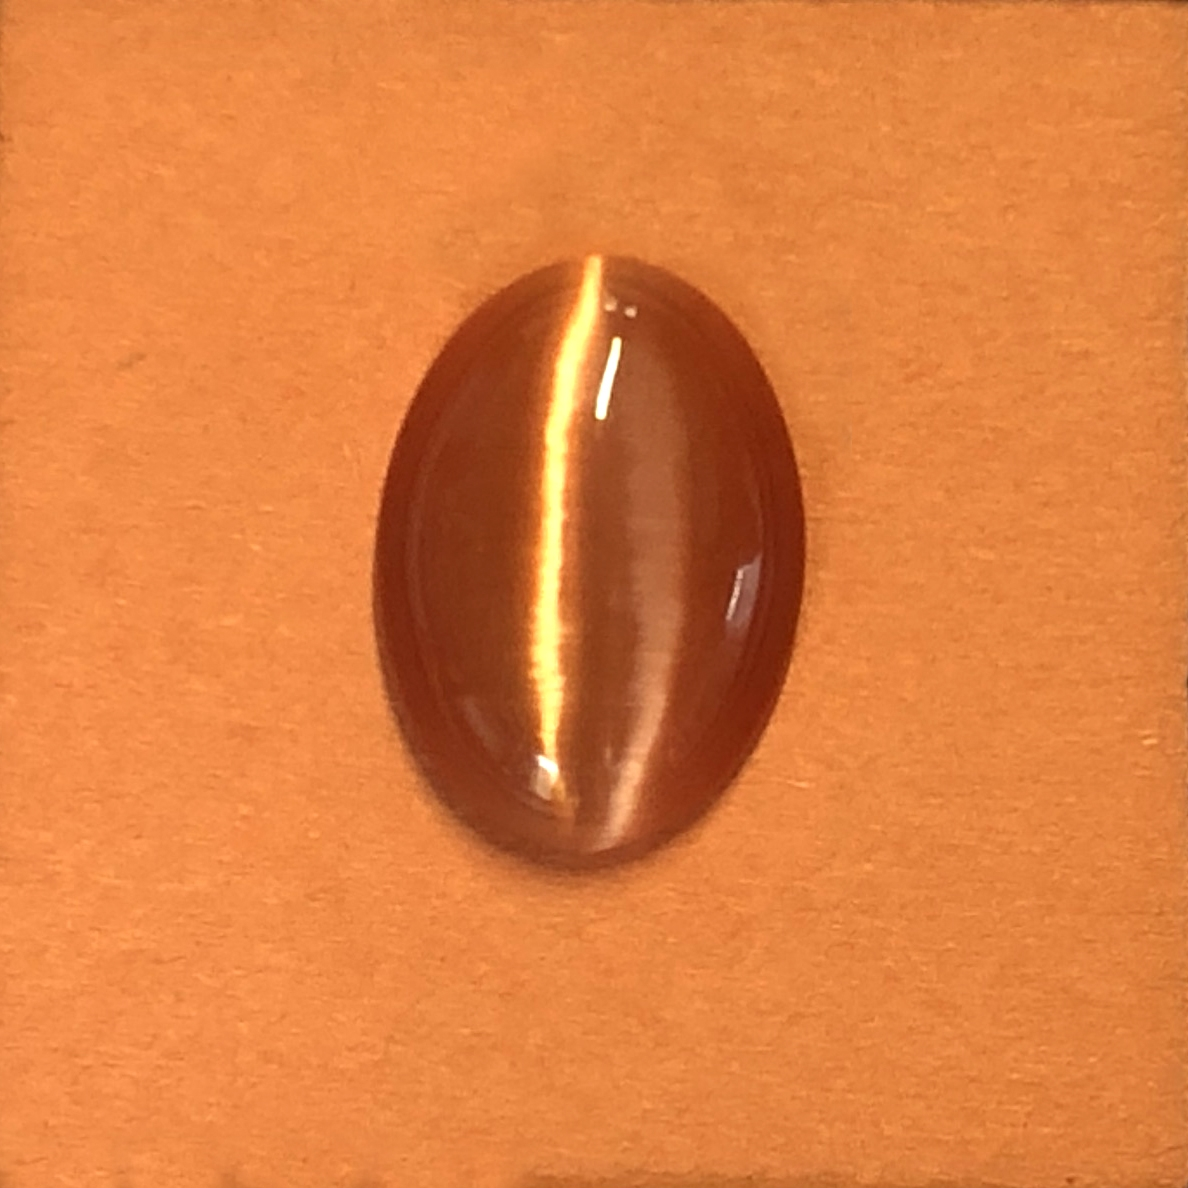 copper cat's eye stone, focal stone, fiber optic, glass stone, glass, cat's eye, copper stone, cabochon, transparent, oval, glossy shine, oval stone, US made, B'sue Boutiques, jewelry stone, 25x18mm, jewelry making supplies, 09701